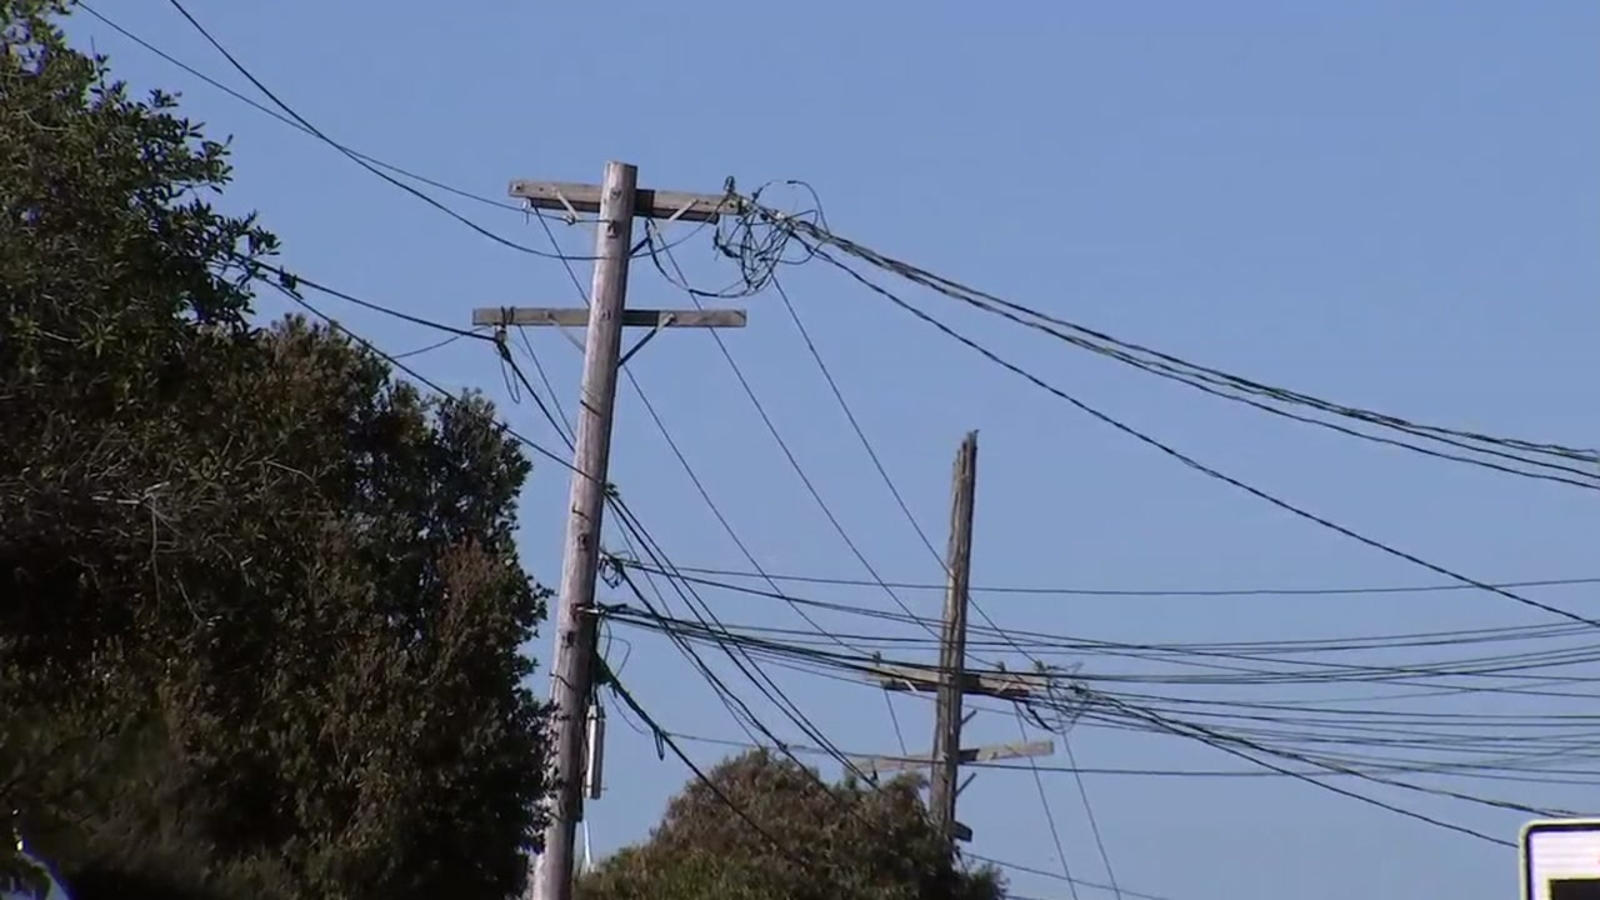 LIST: Counties, cities affected by PG&E power outage in Bay Area, rest of California - KGO-TV